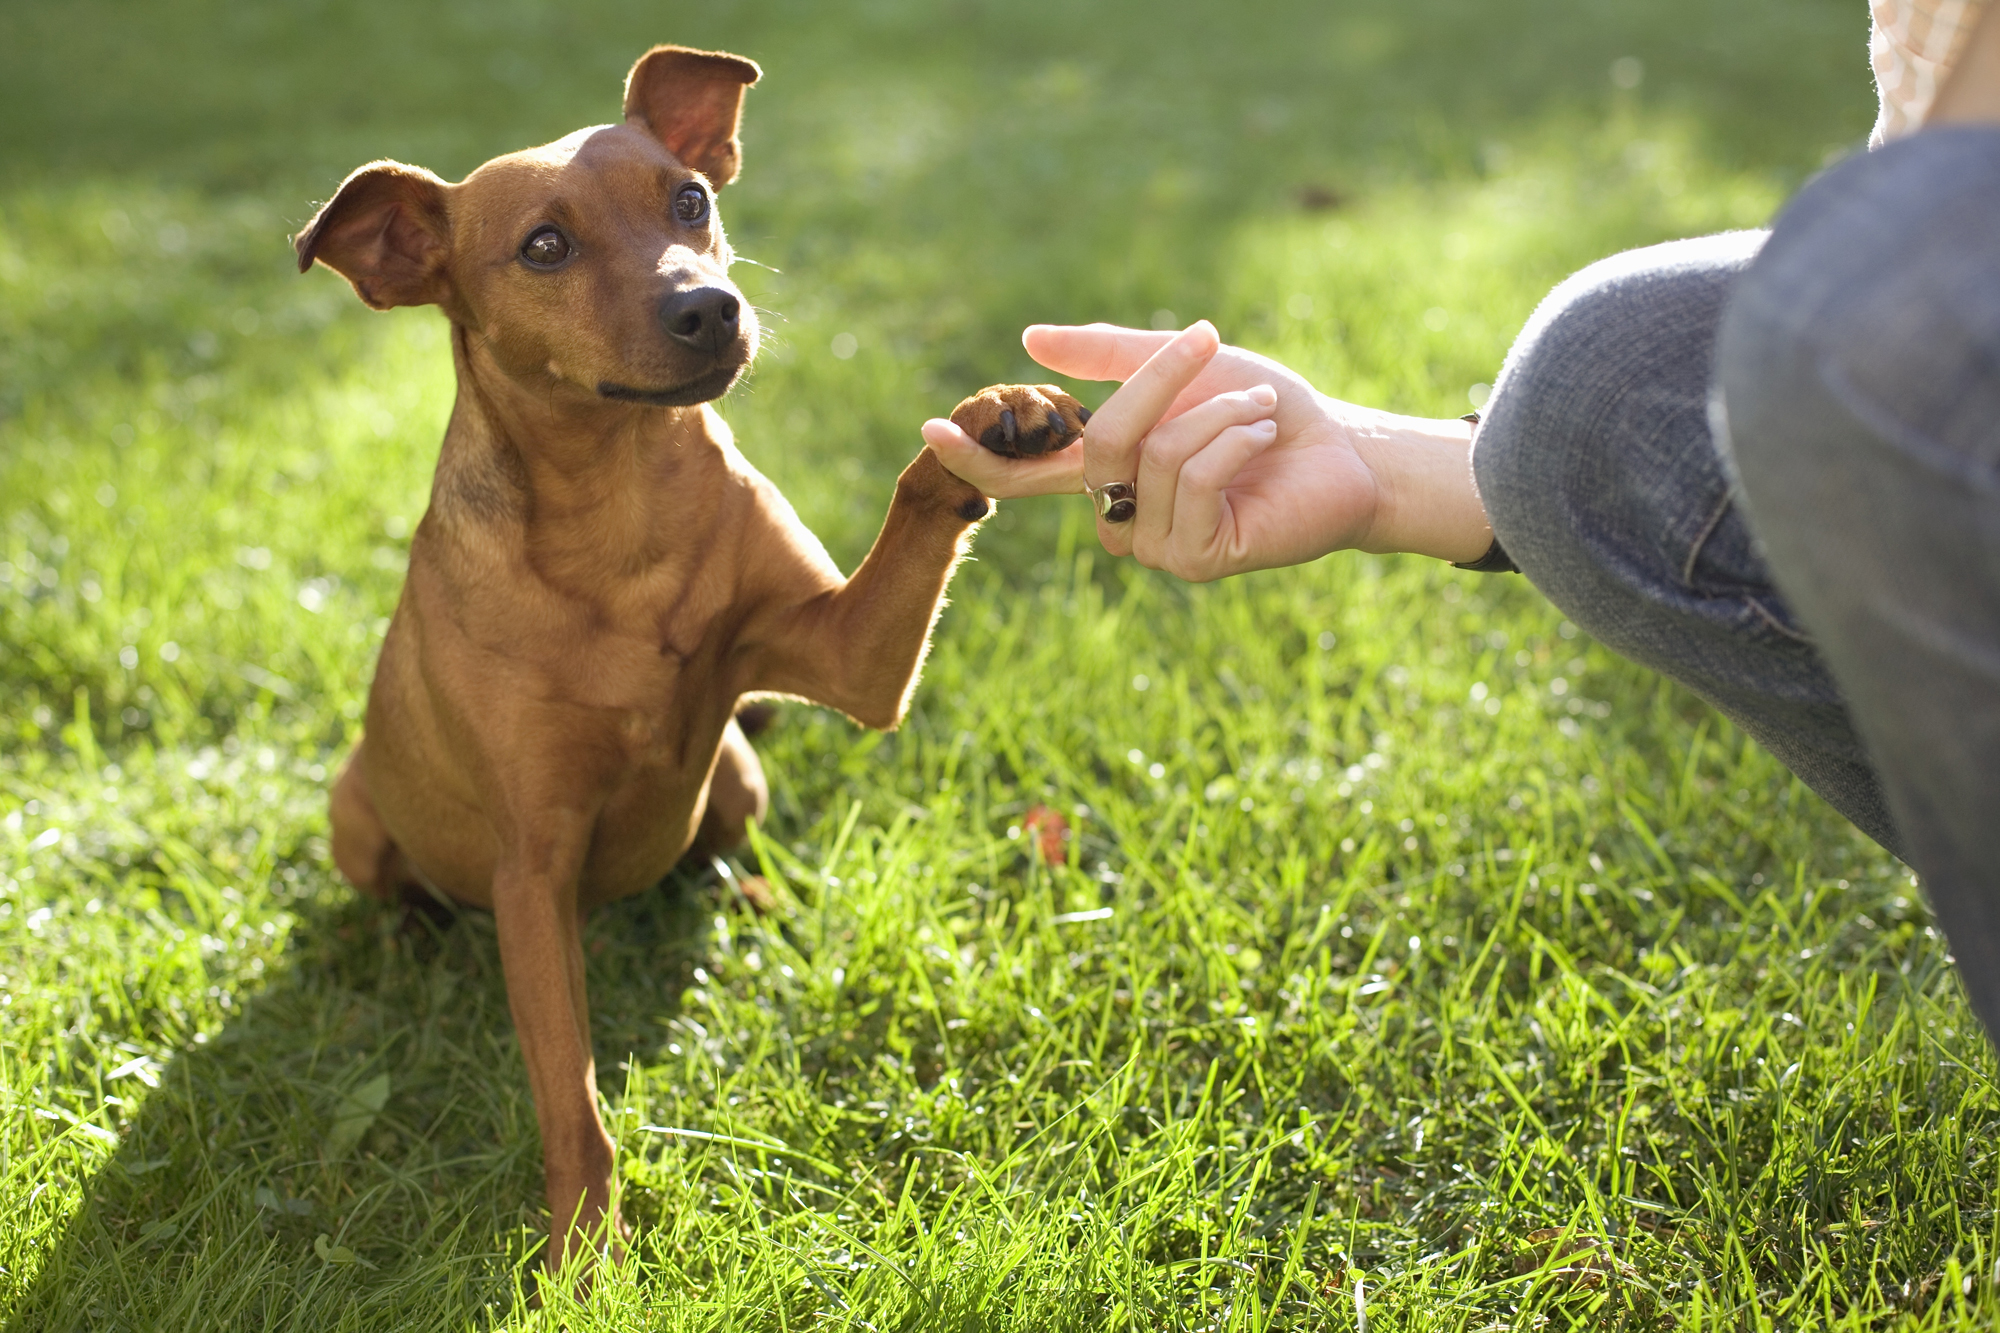 What I Learned About Graciousness, Enthusiasm, andBravery—From My Dog